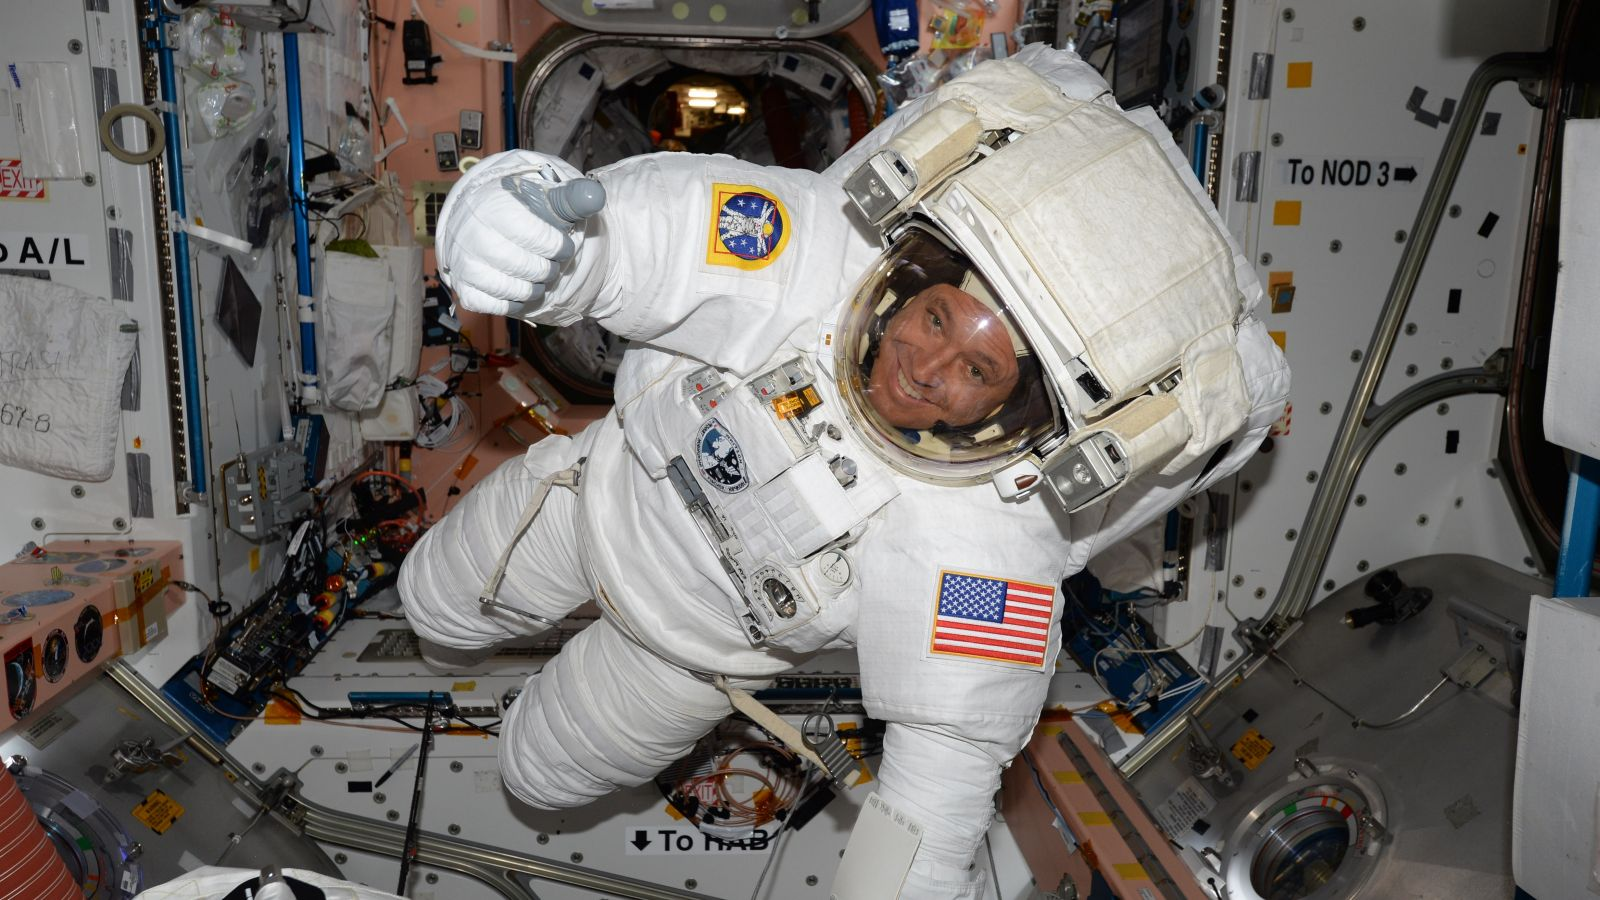 US astronauts begin 200th spacewalk at International Space Station